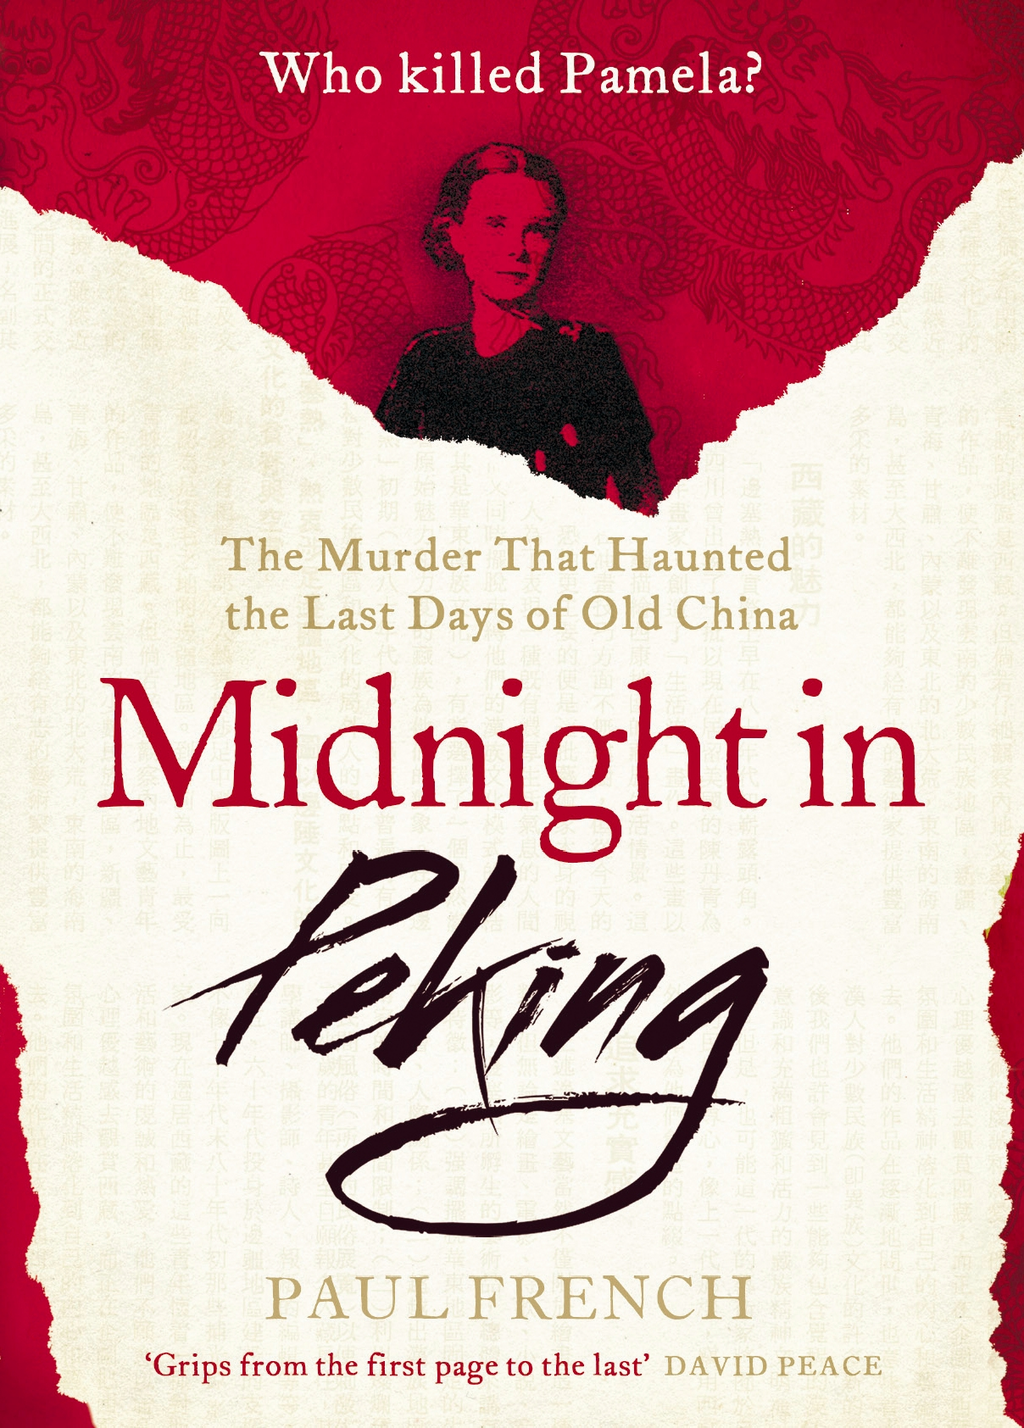 Midnight in Peking The Murder That Haunted the Last Days of Old China